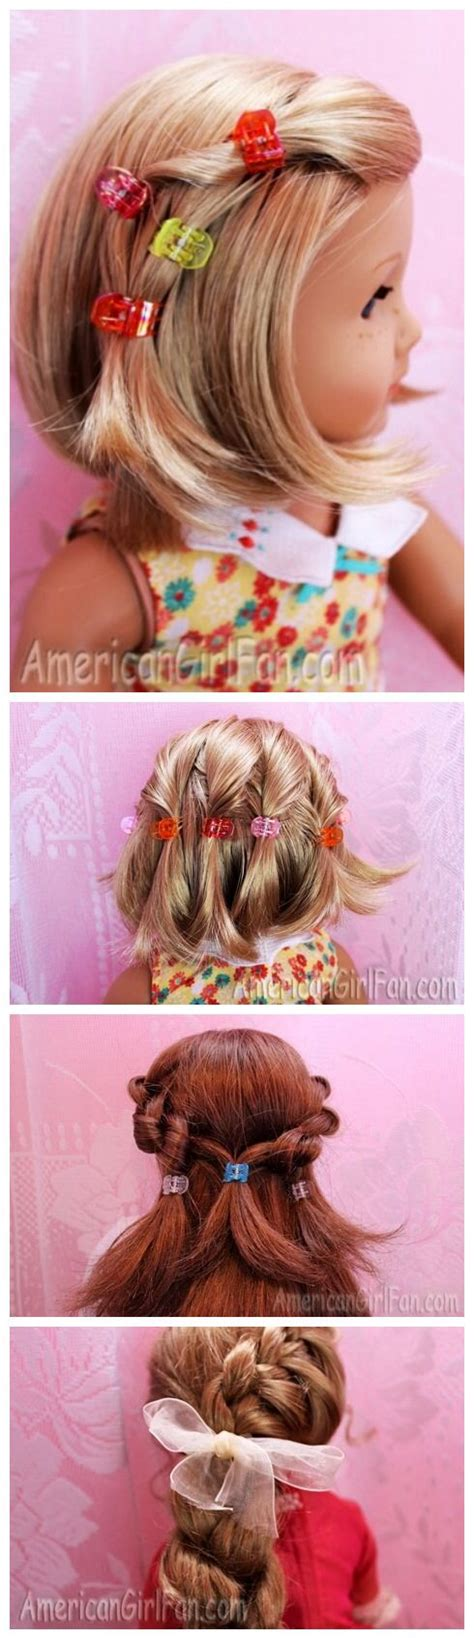 americangirlfan doll hairstyles 25 best ideas about american girl hairstyles on pinterest